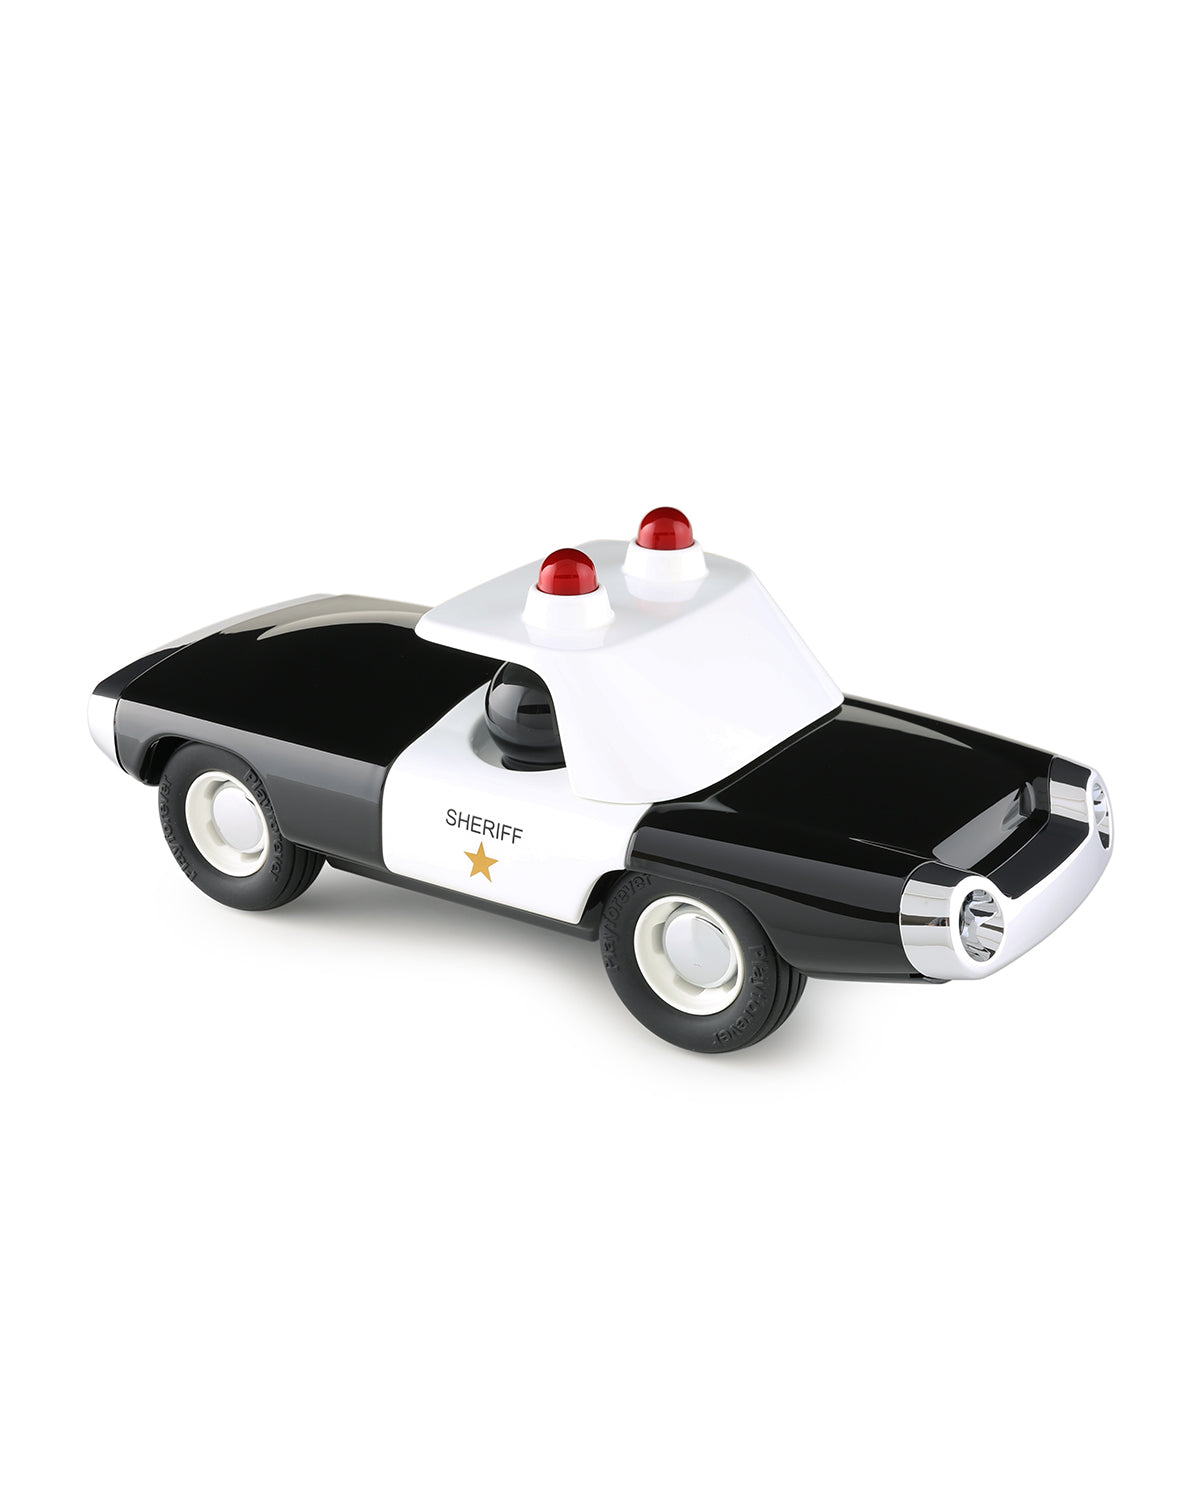 Playforever Car MAVERICK HEAT SHERIFF